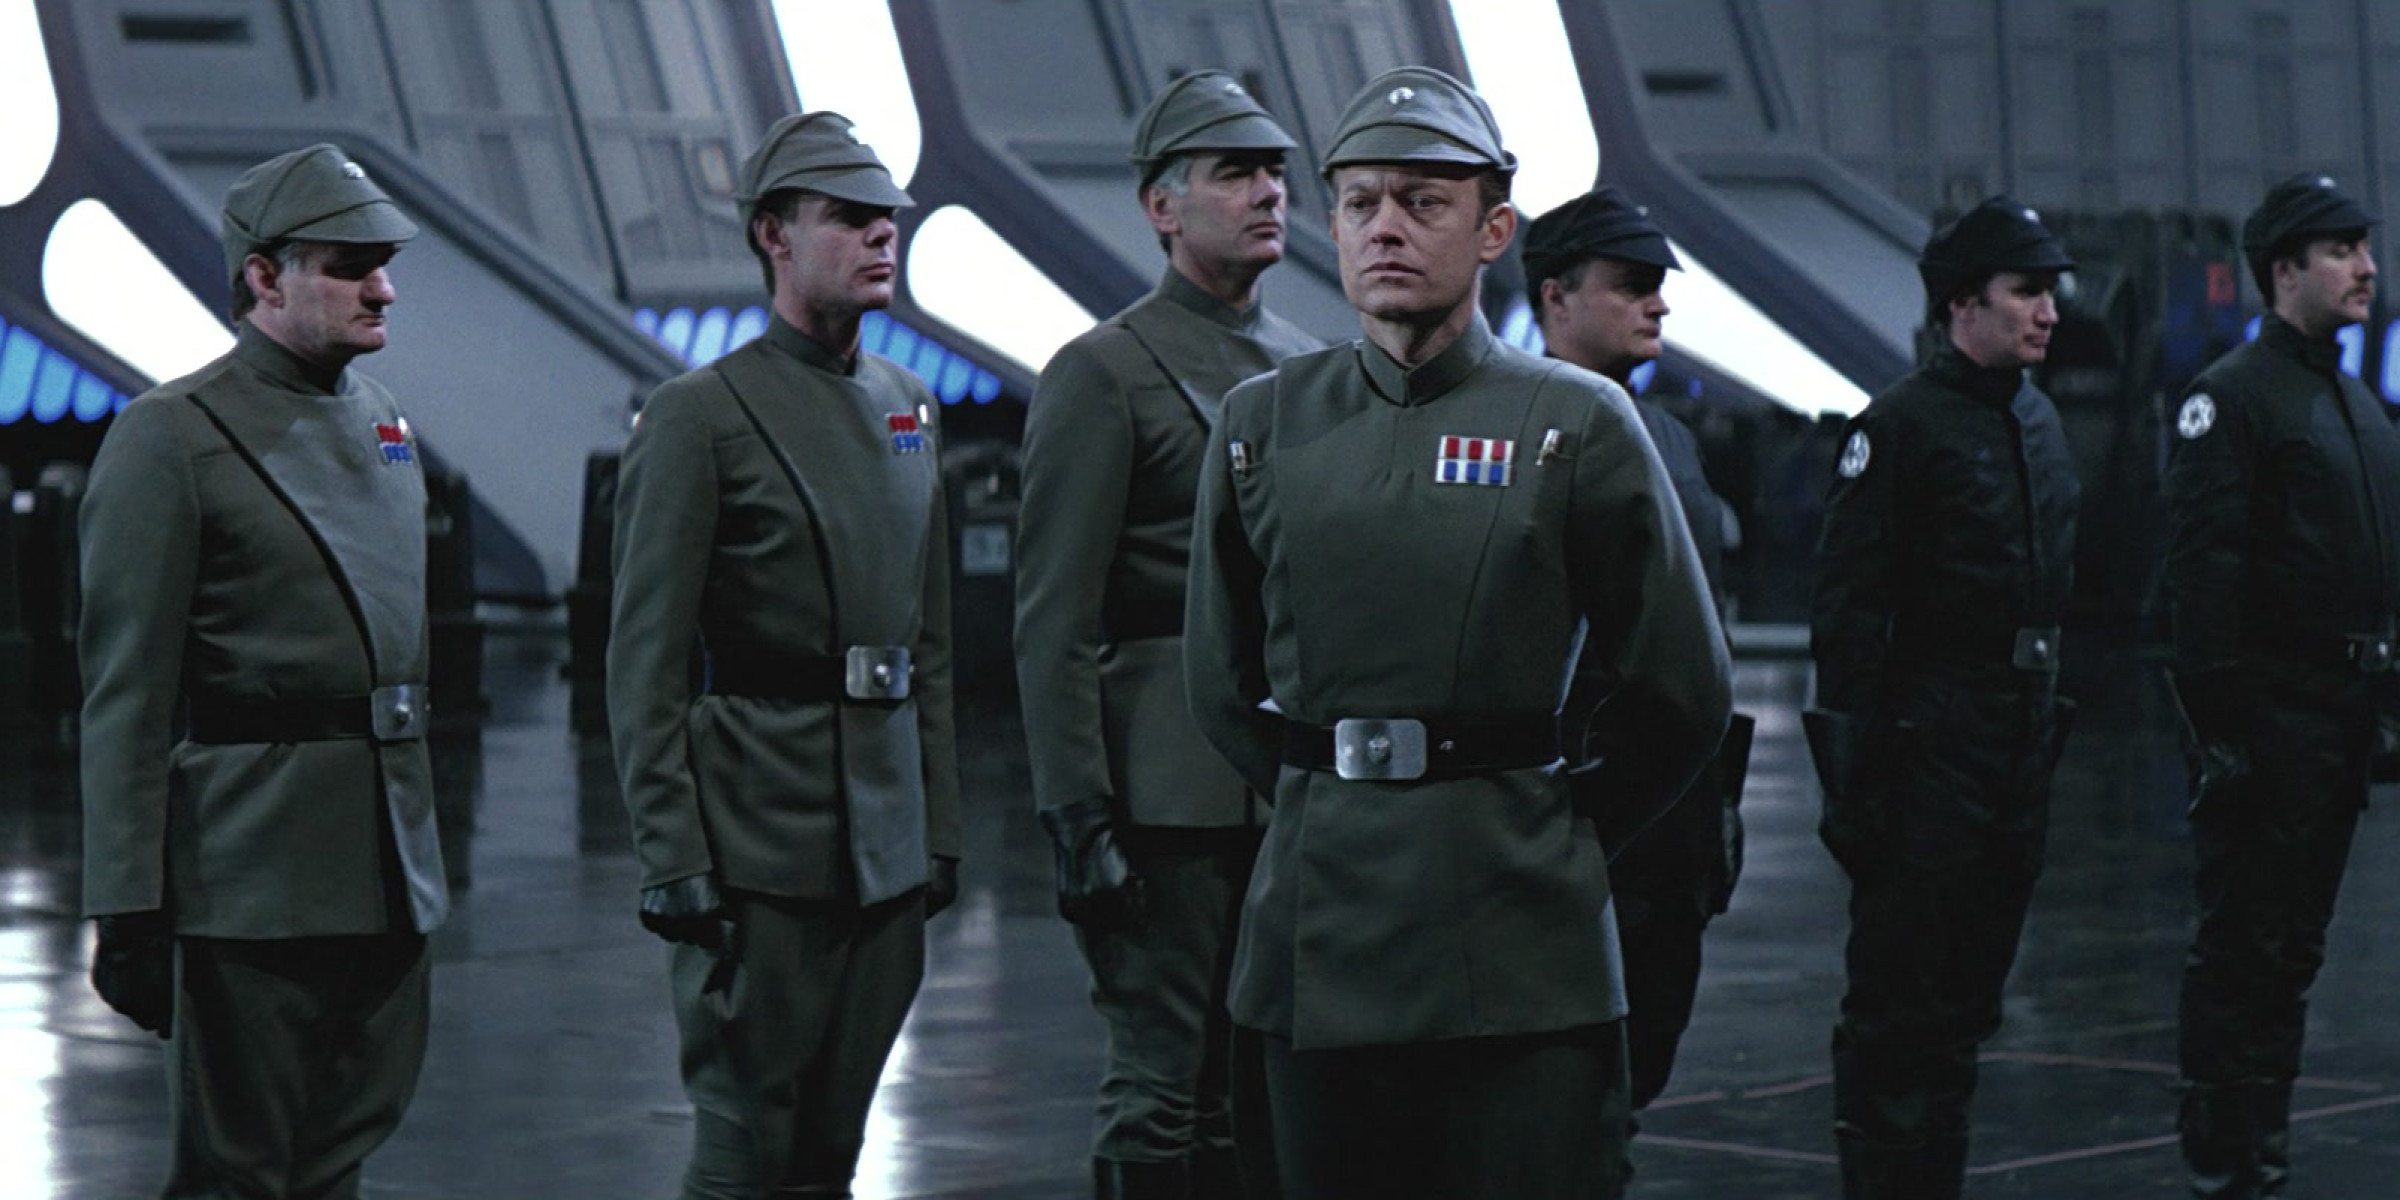 imperial_officers_rotj-2400x1200-3948991